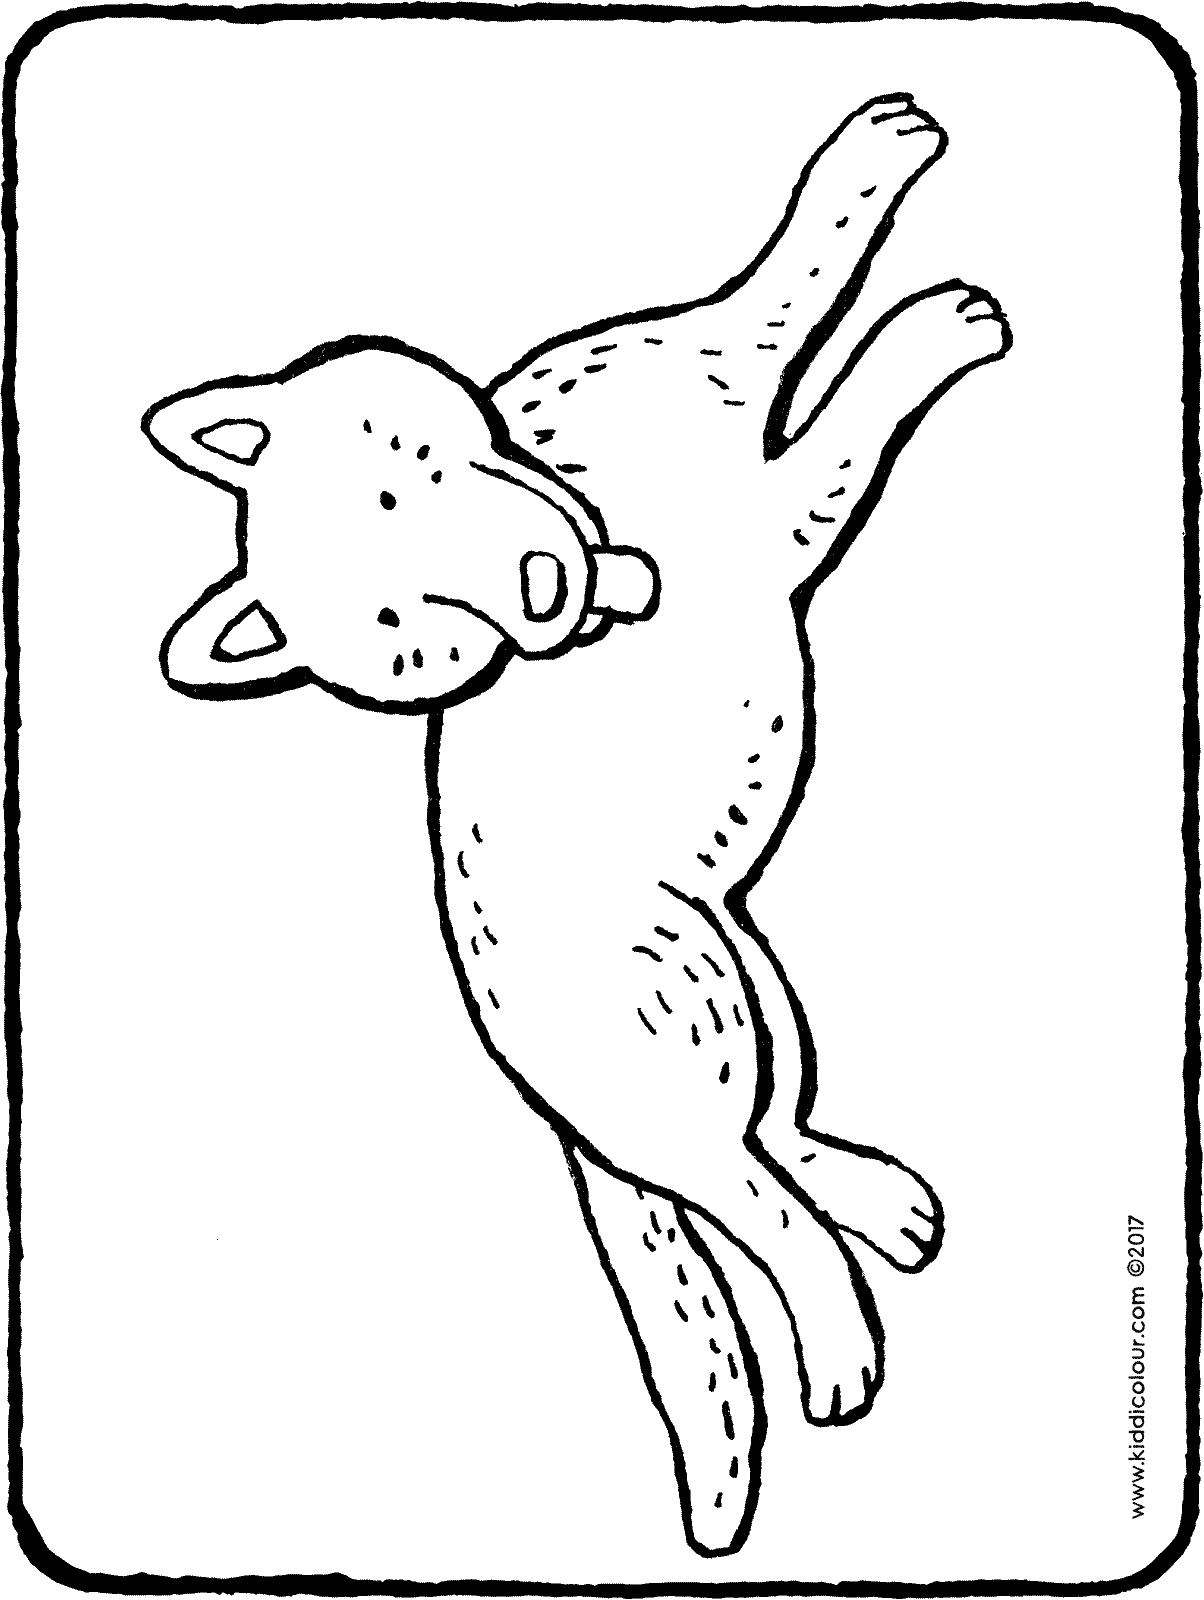 dog having a rest colouring page drawing picture 01H